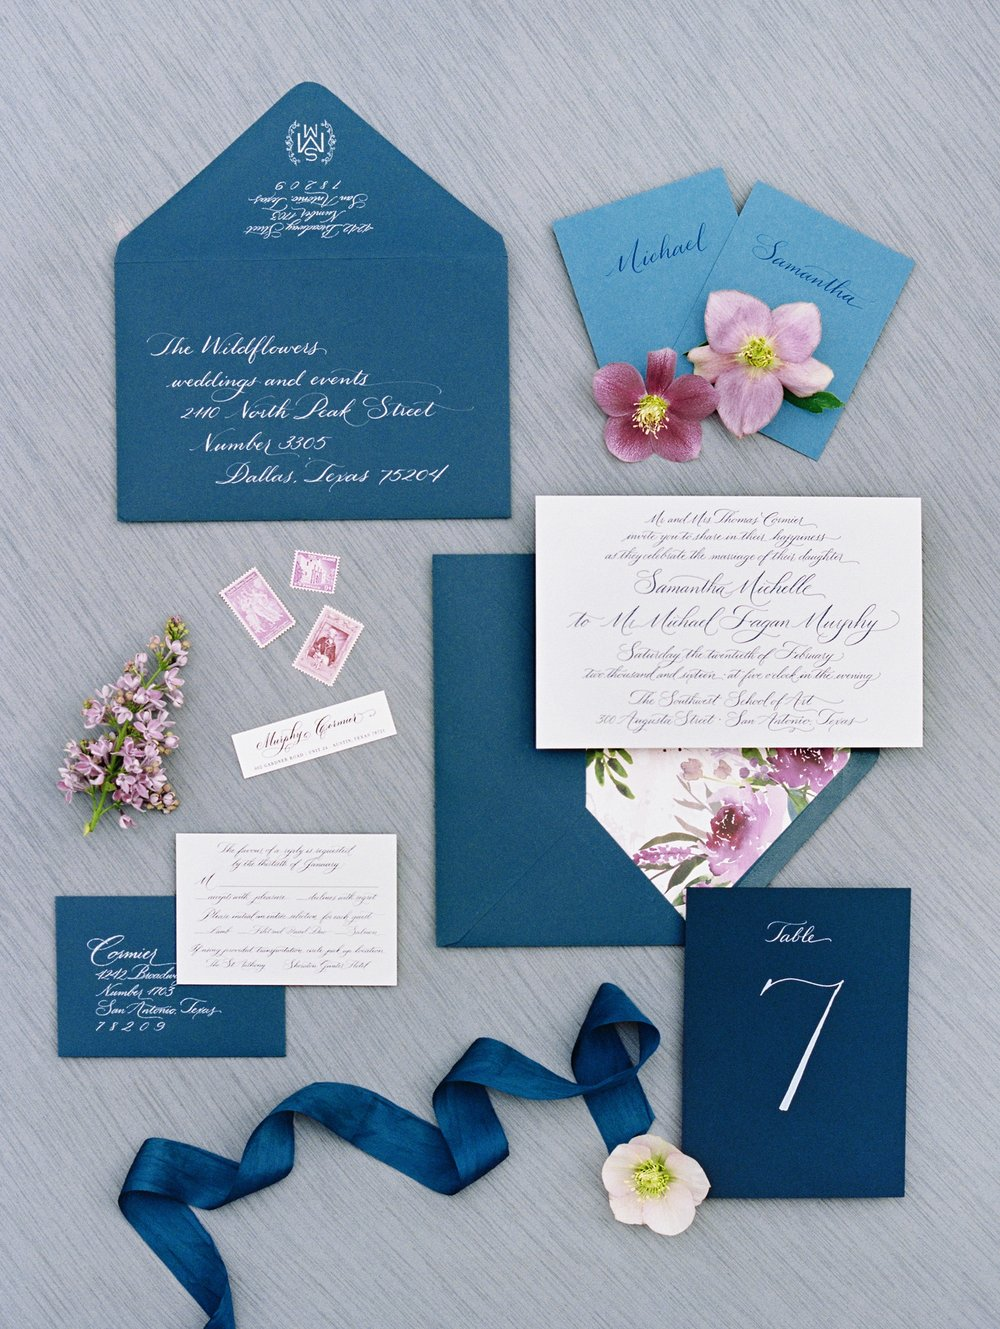 Deep, luxe blues and light translucent watercolors inspired this invitation suite | The Wildflowers featured on Martha Stewart Weddings | Instagram: @ thewildflowers_com | www.thewildflowers.com